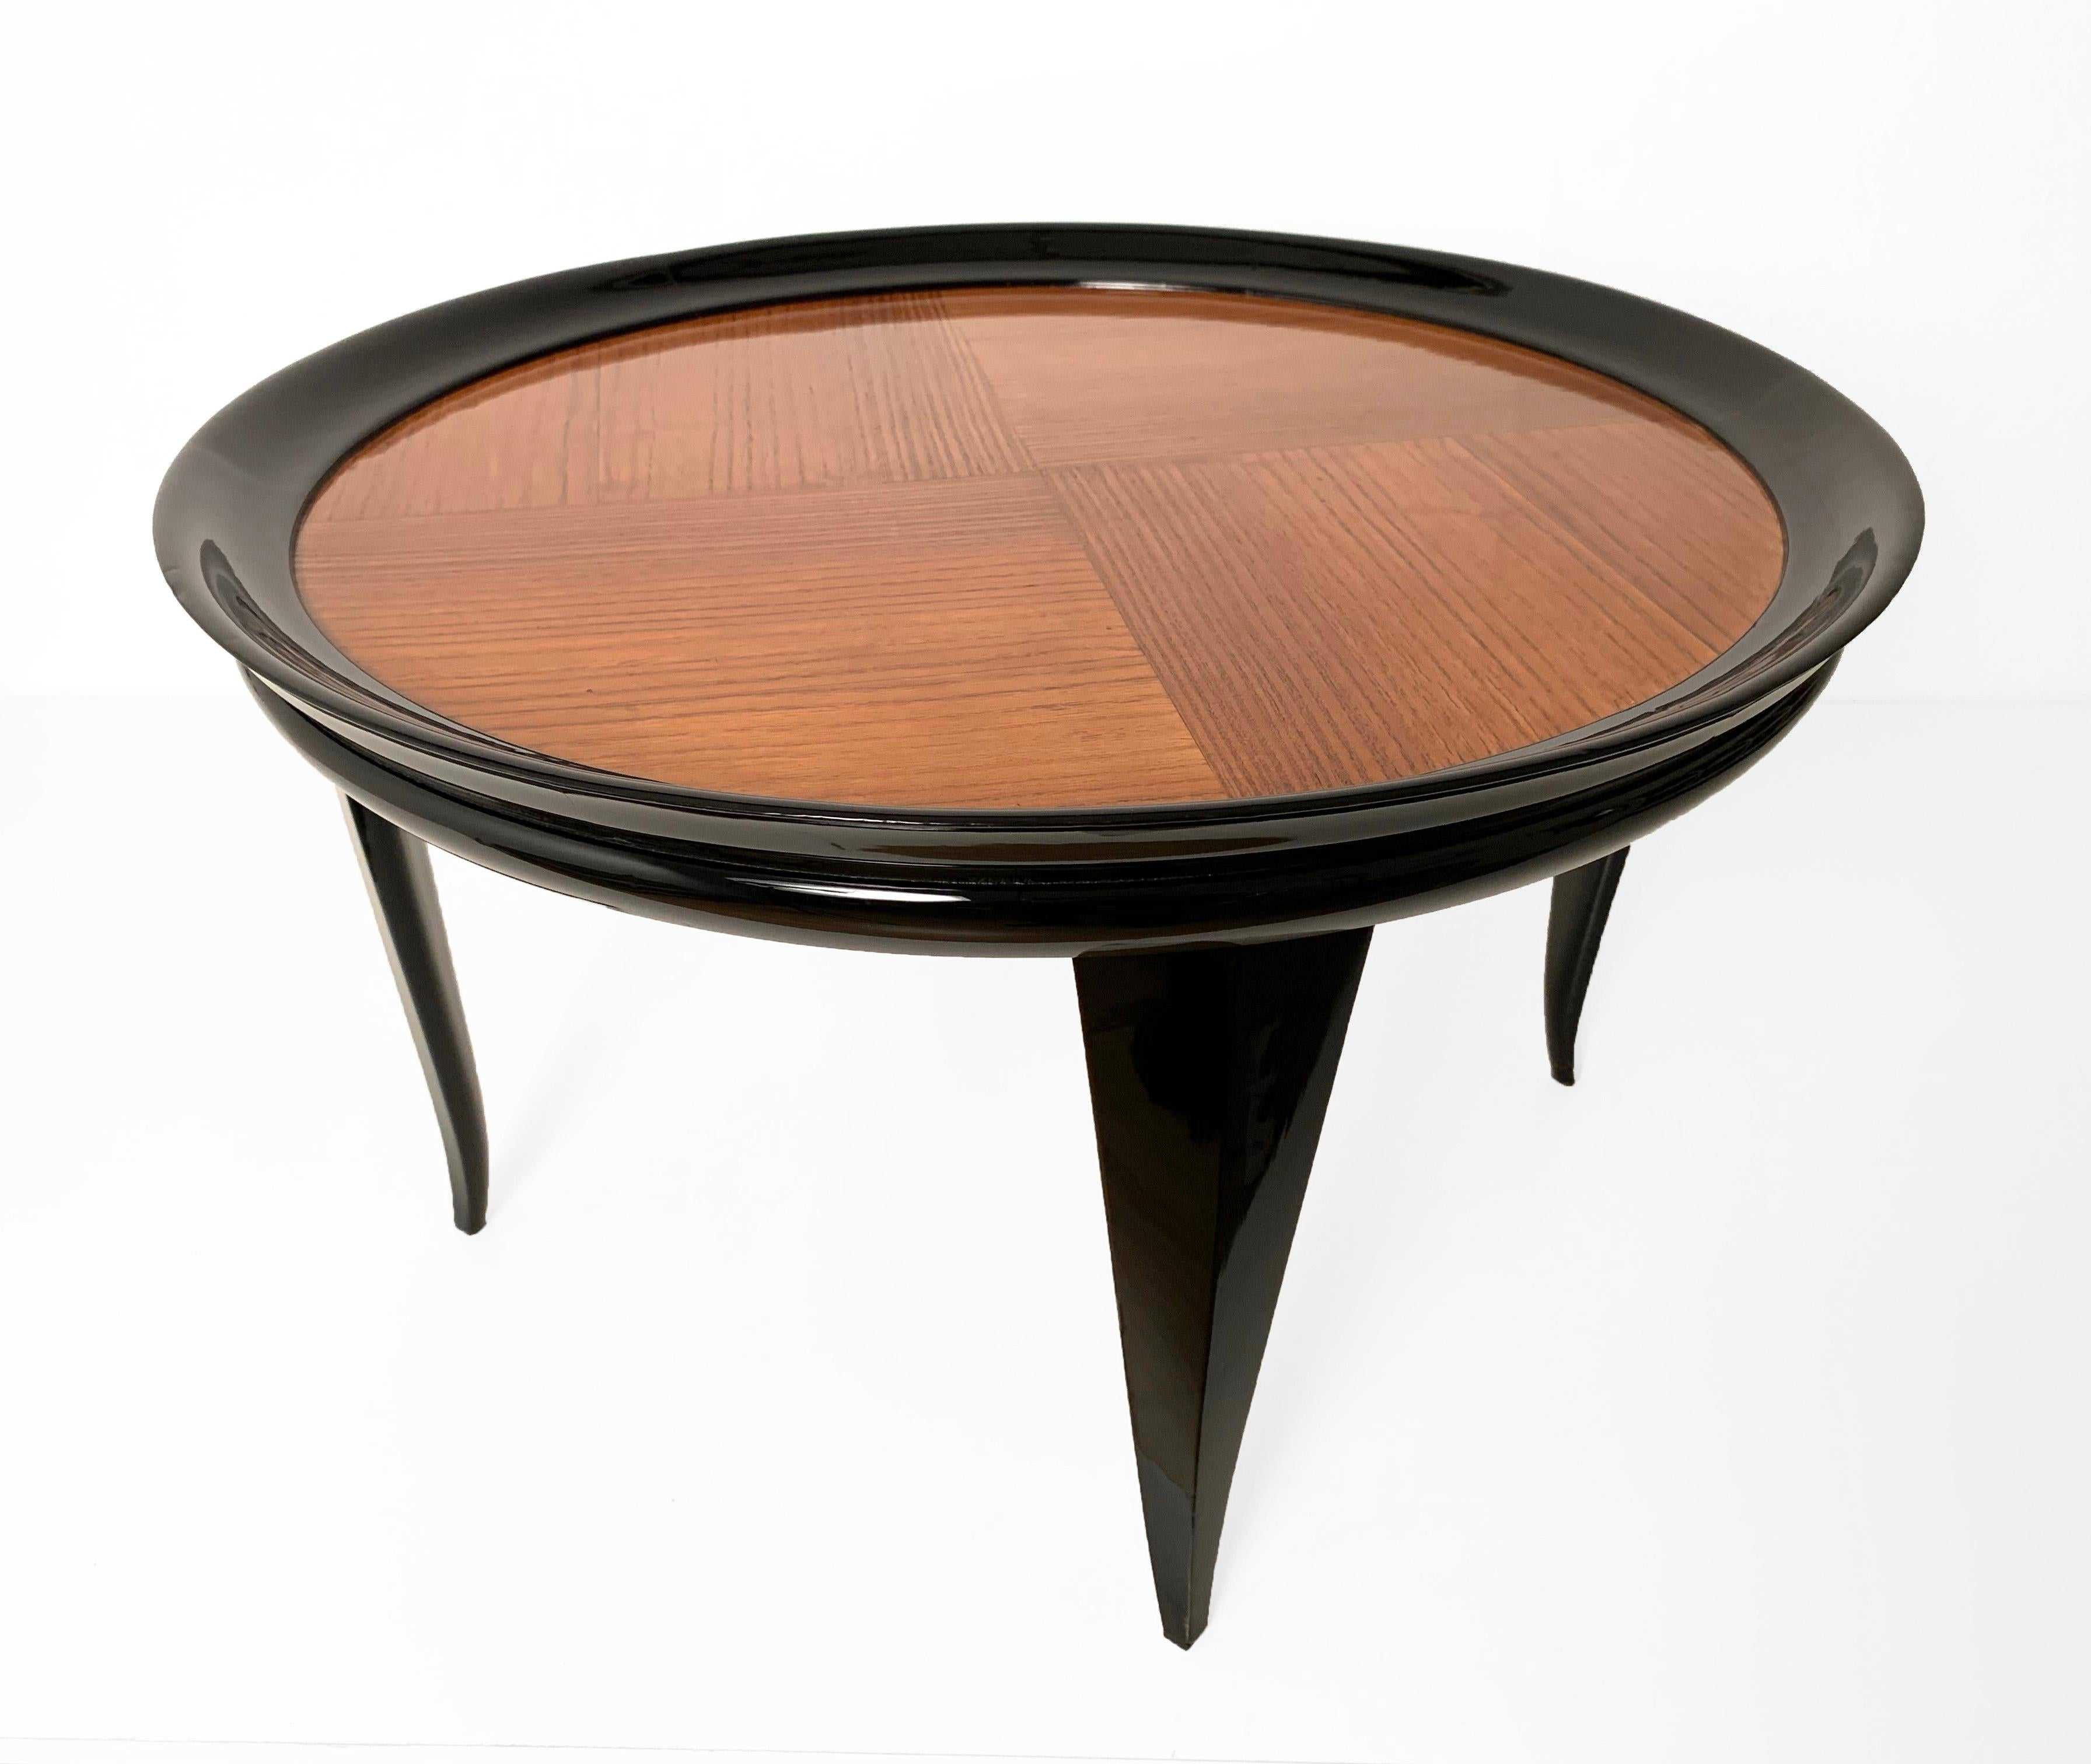 Gio Ponti Round Coffee Table Italian Art Deco Ebonized Wood Italy 1940s For At 1stdibs